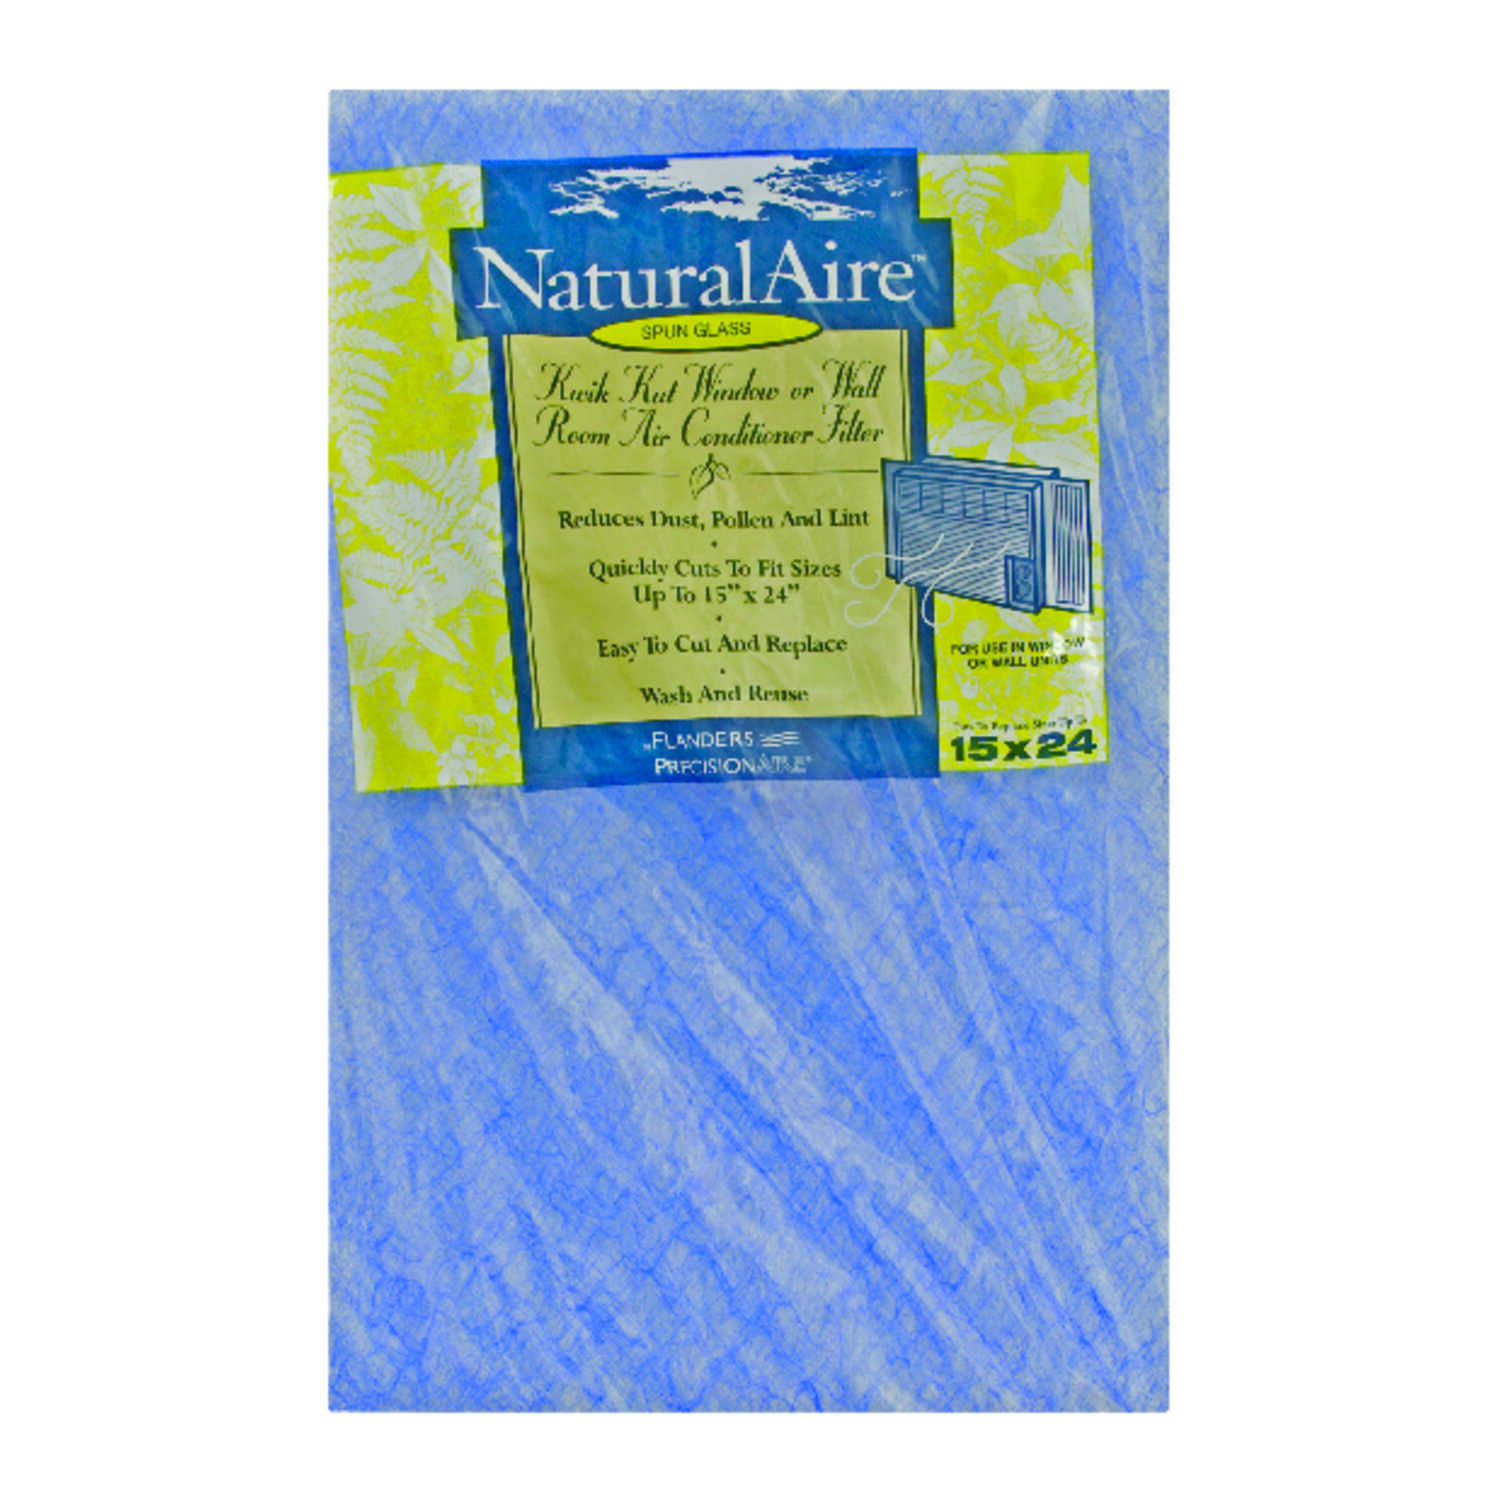 AAF Flanders  NaturalAire  24 in. H x 15 in. W x 1/2 in. D Fiberglass  Air Conditioner Filter